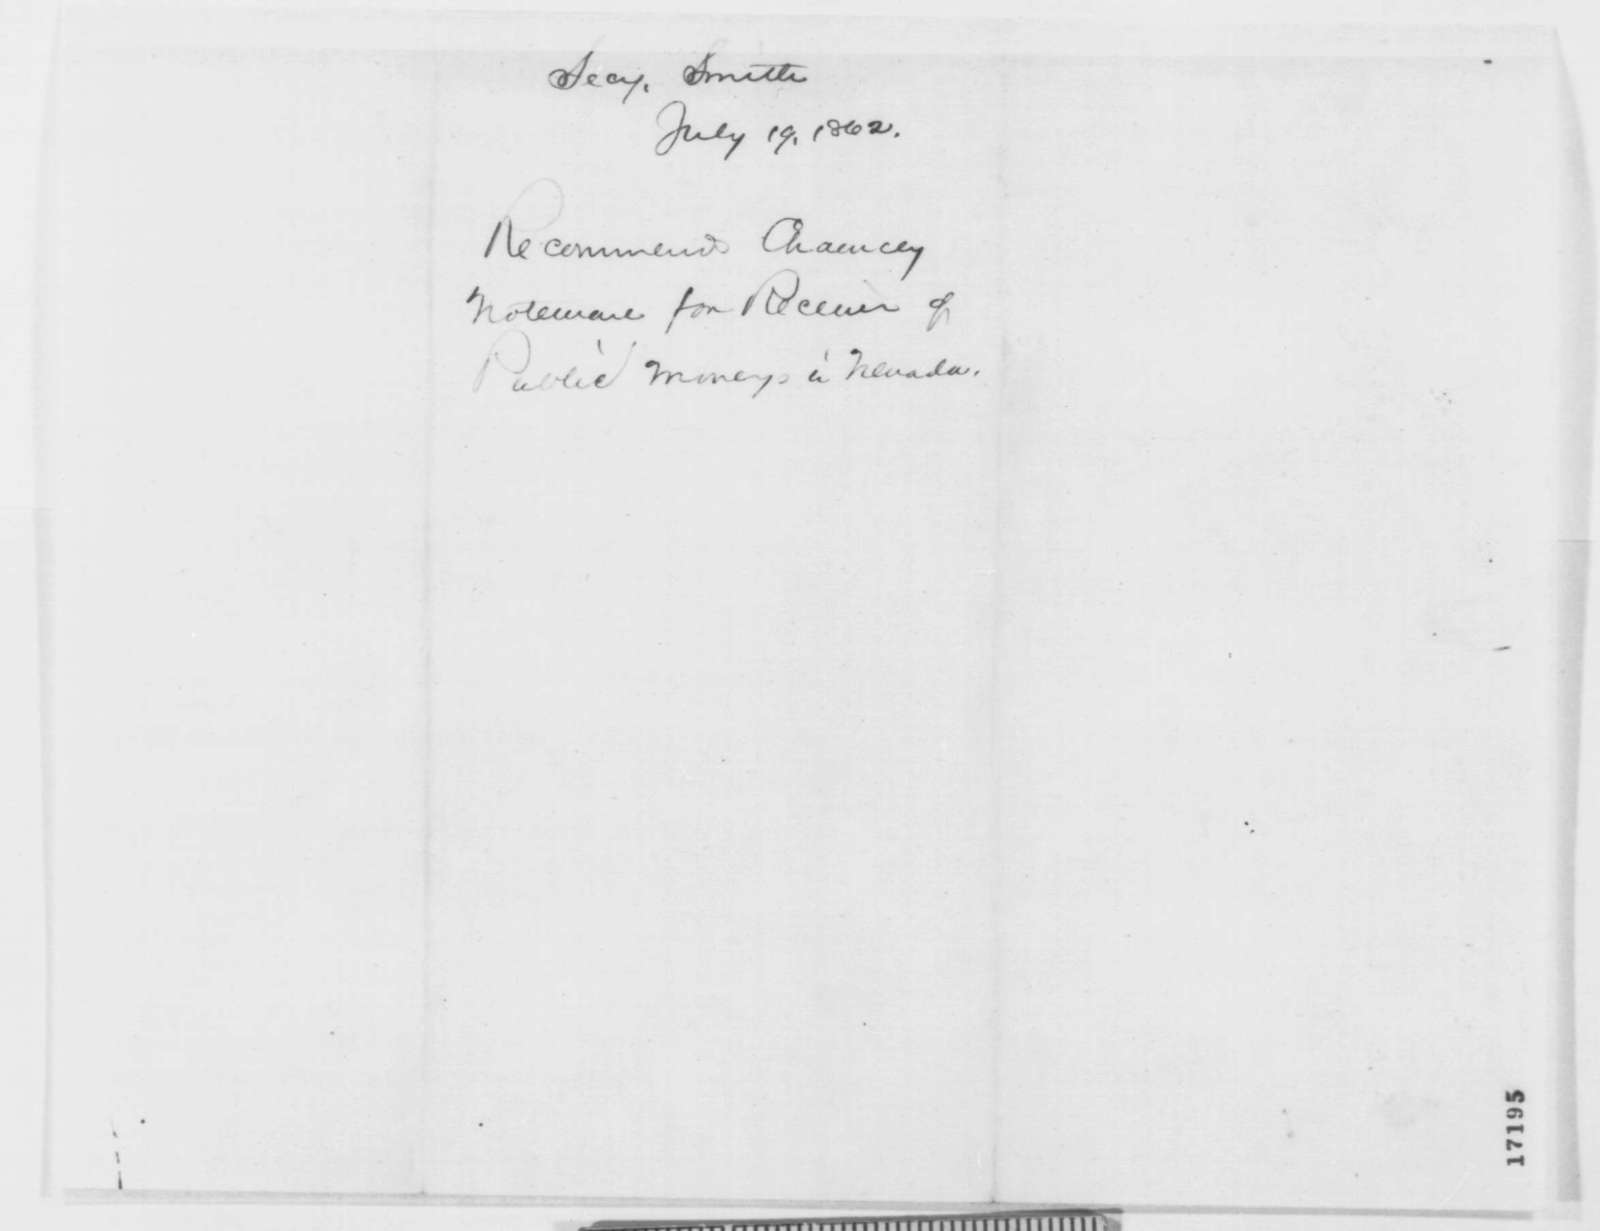 Caleb B. Smith to Abraham Lincoln, Saturday, July 19, 1862  (Recommendation)